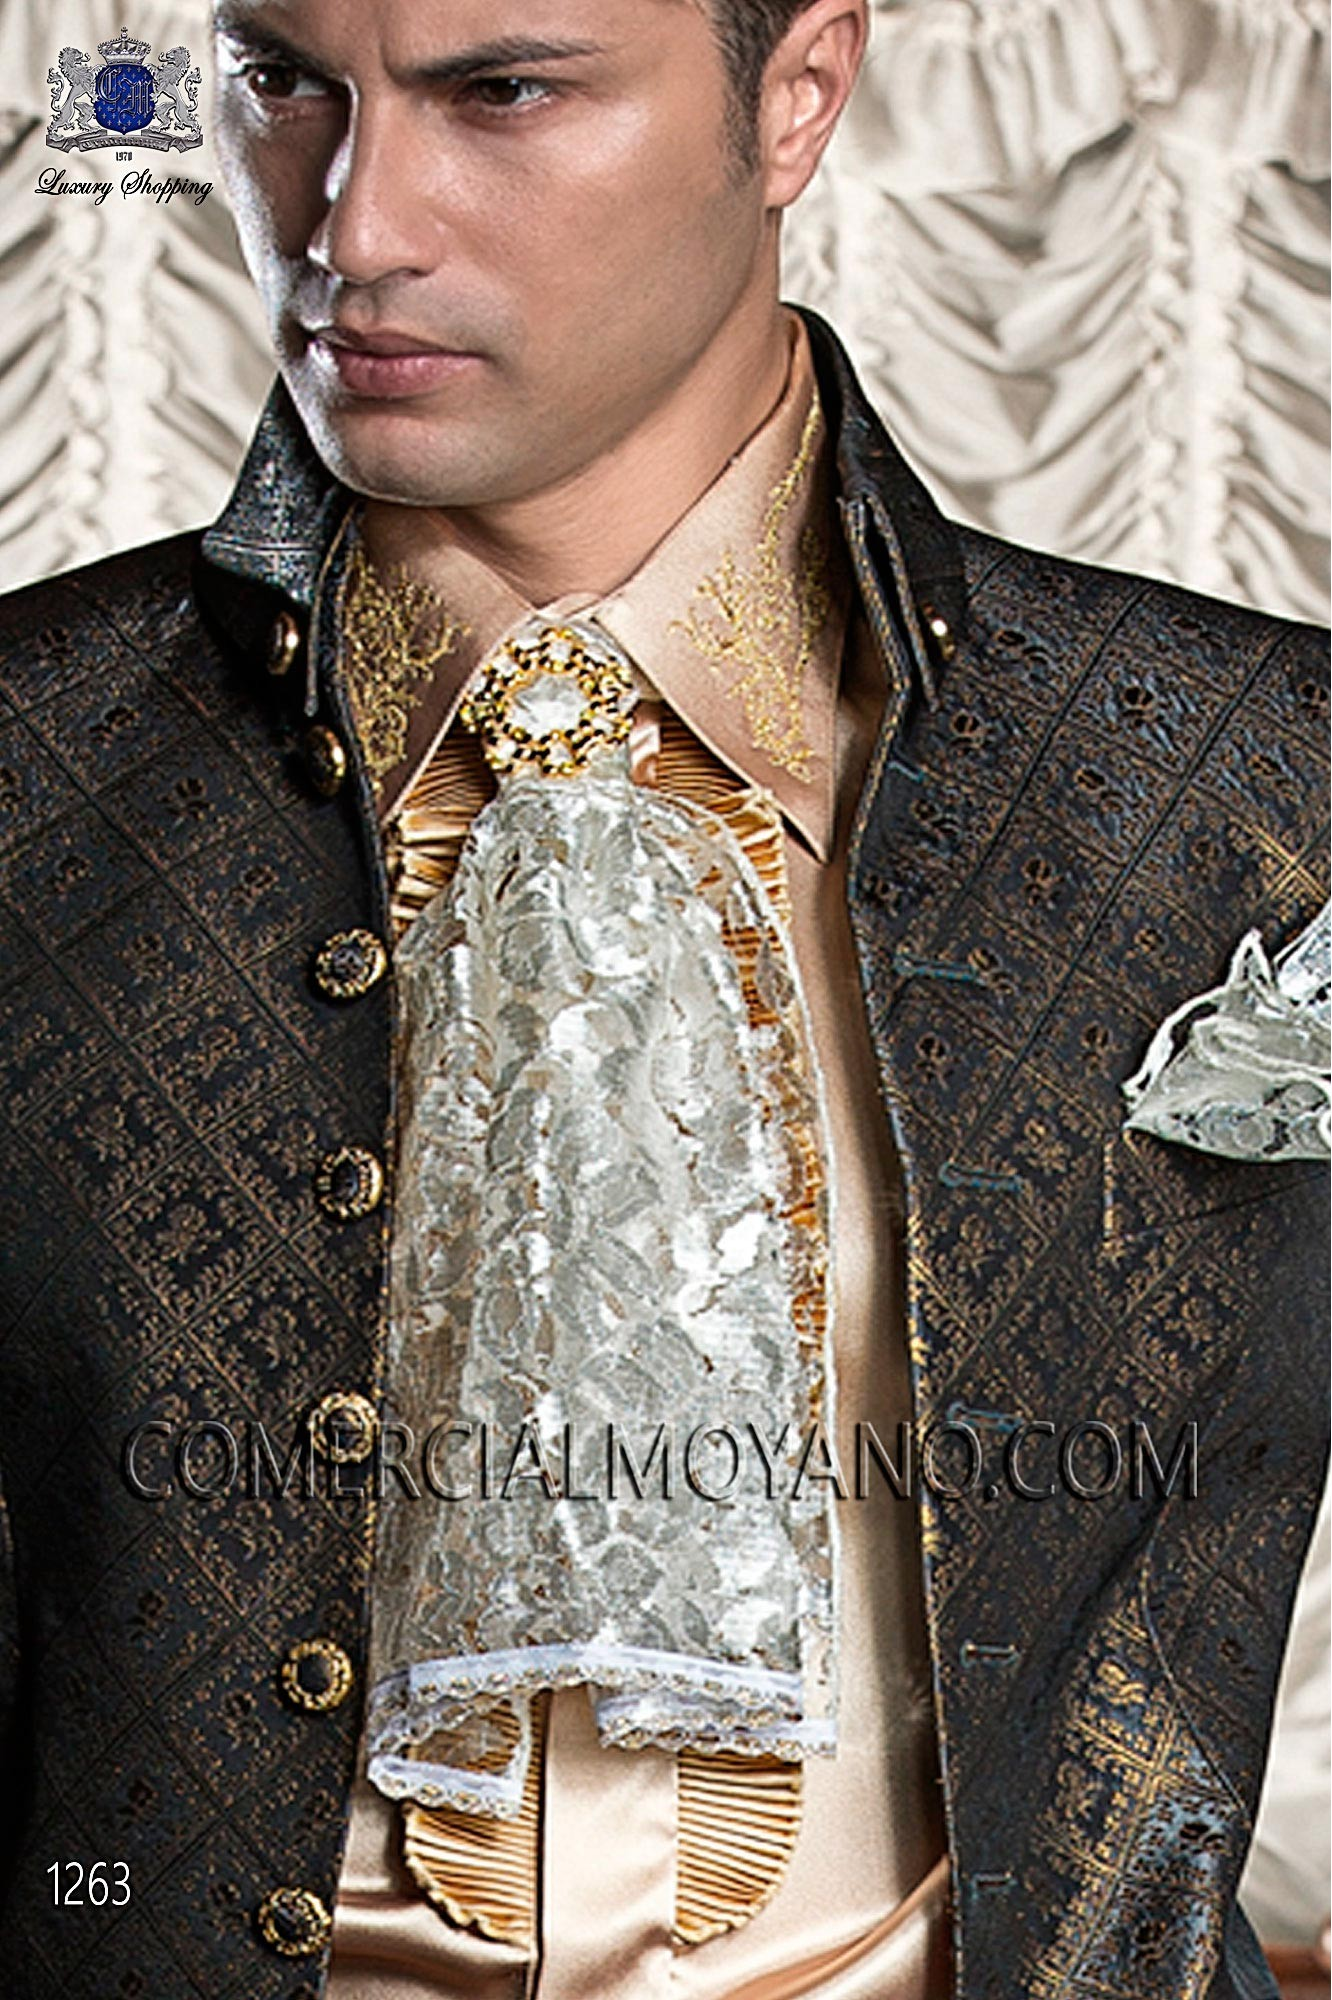 Baroque black/gold men wedding suit, model: 1263 Ottavio Nuccio ...